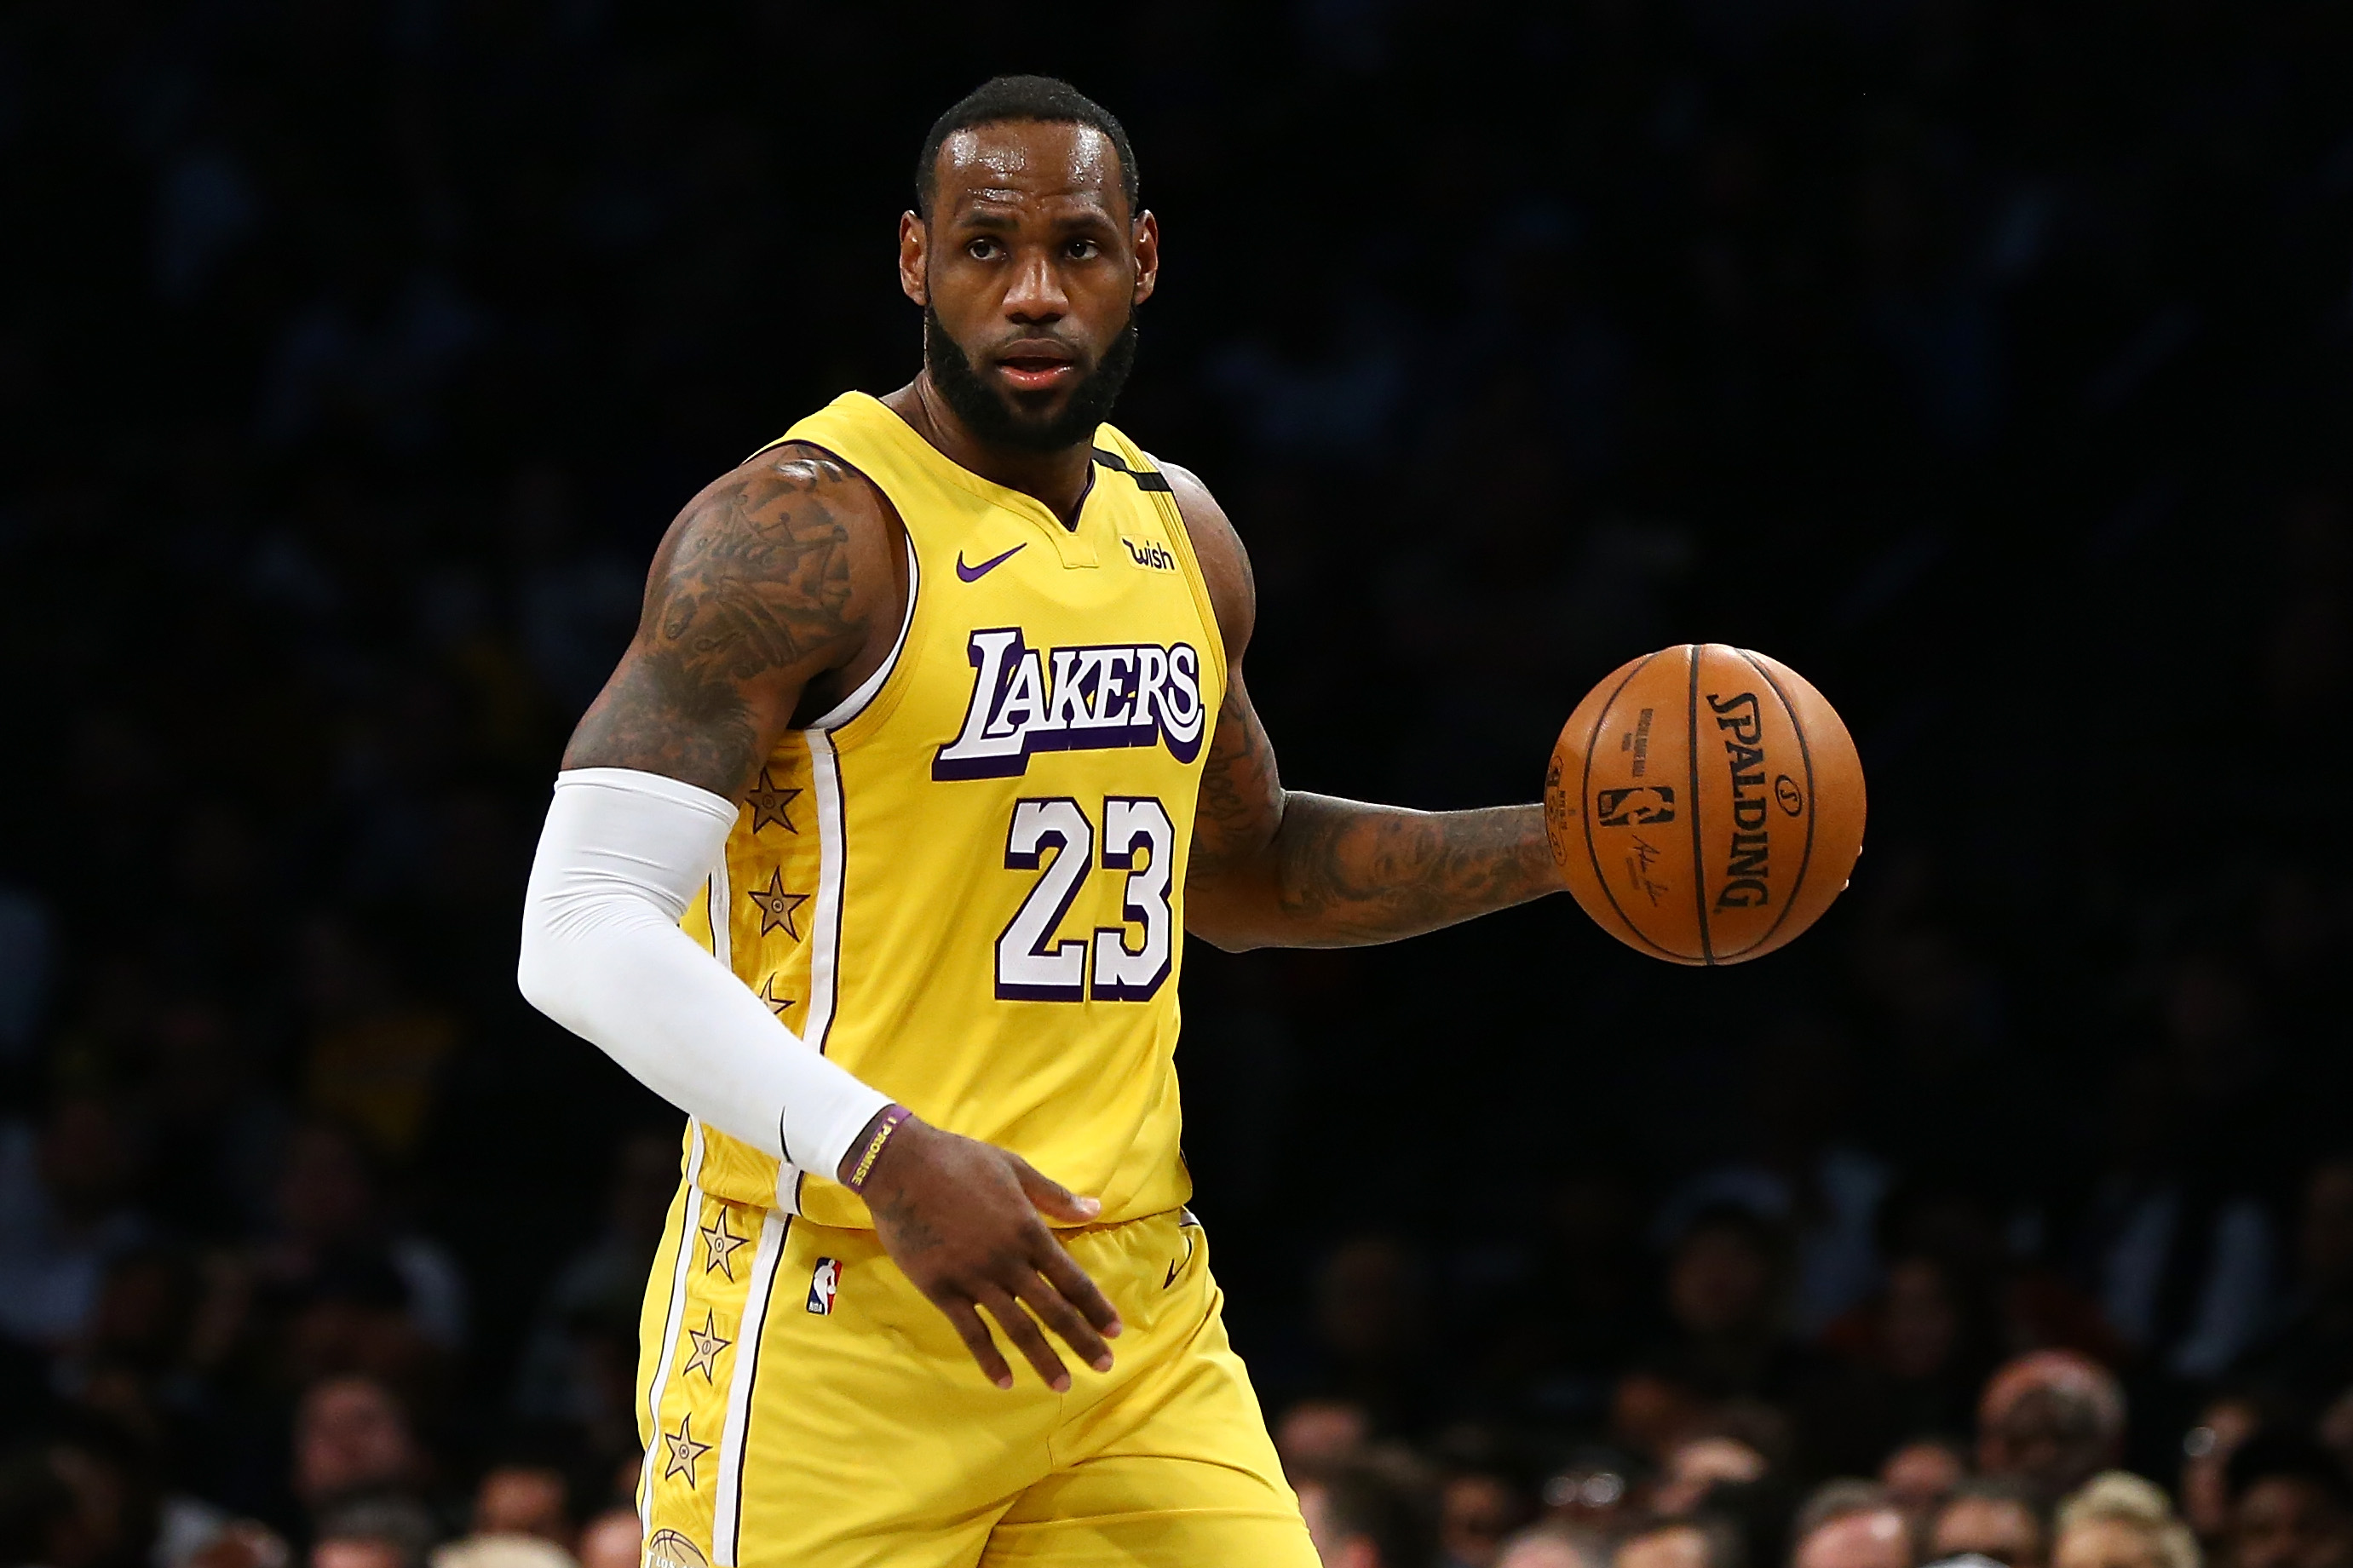 LeBron James criticizes MLB commissioner's handling of the Astros' sign-stealing scandal